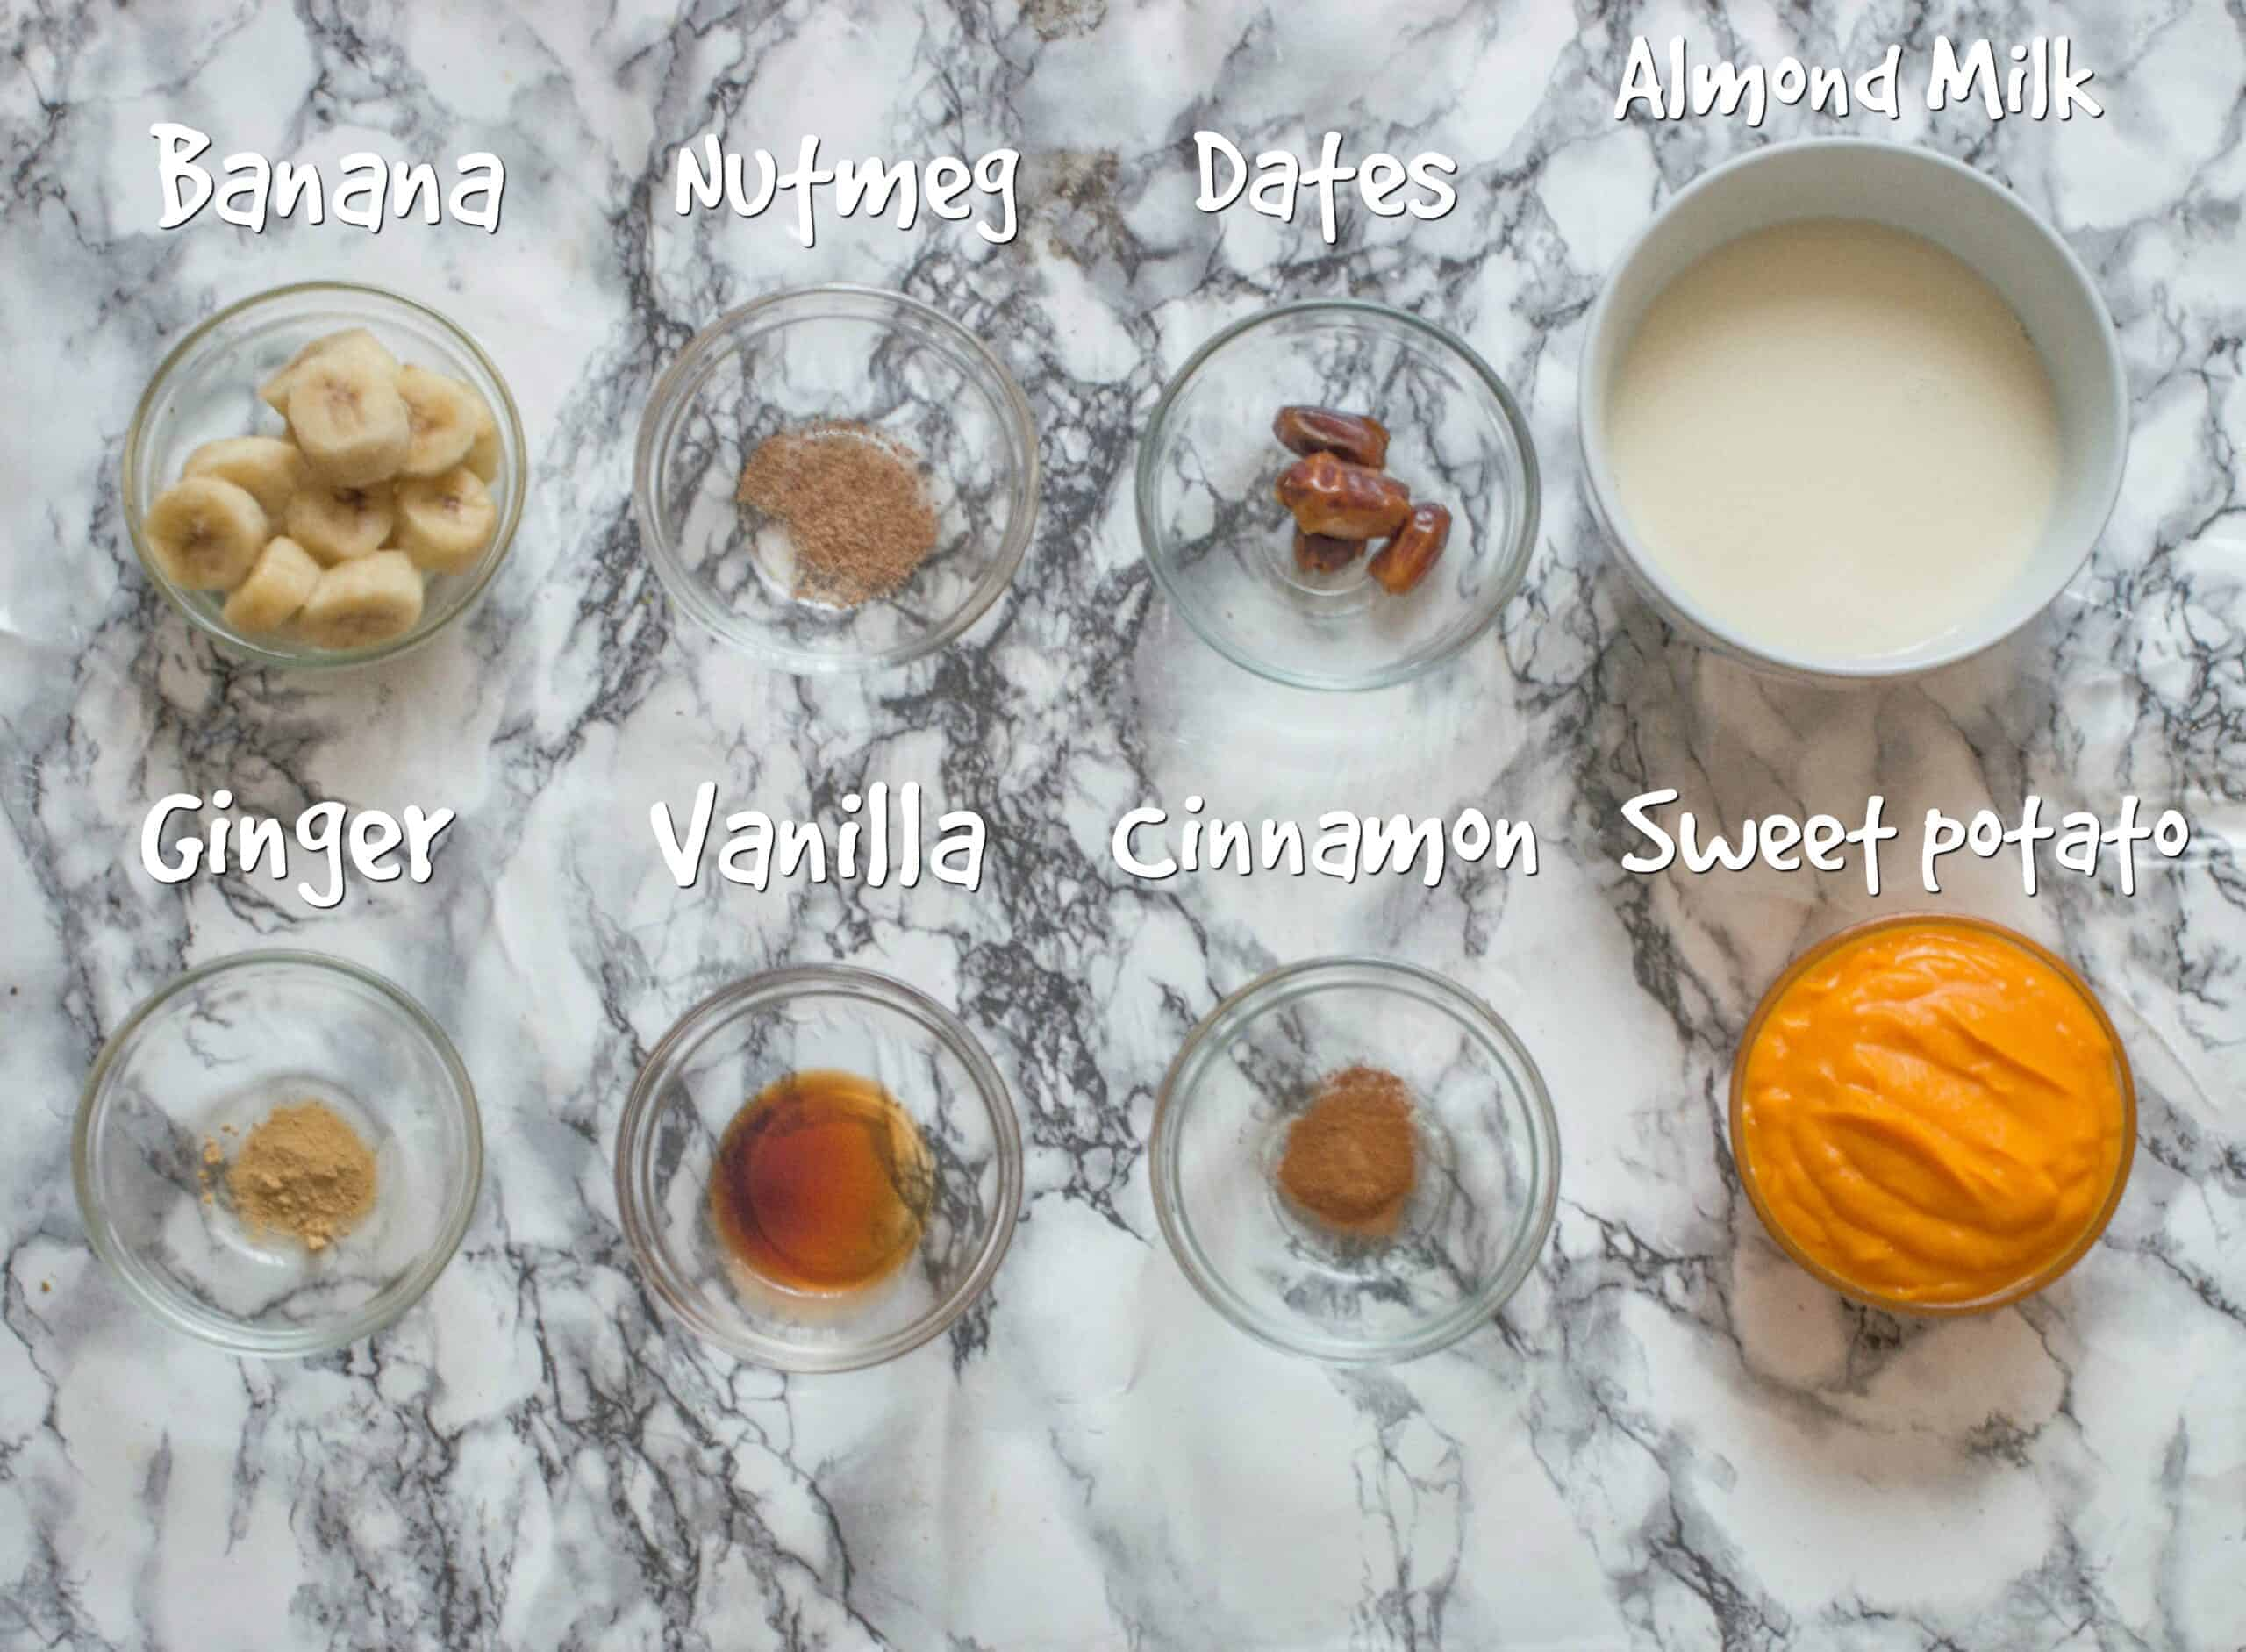 ingredients for the sweet potato smoothie